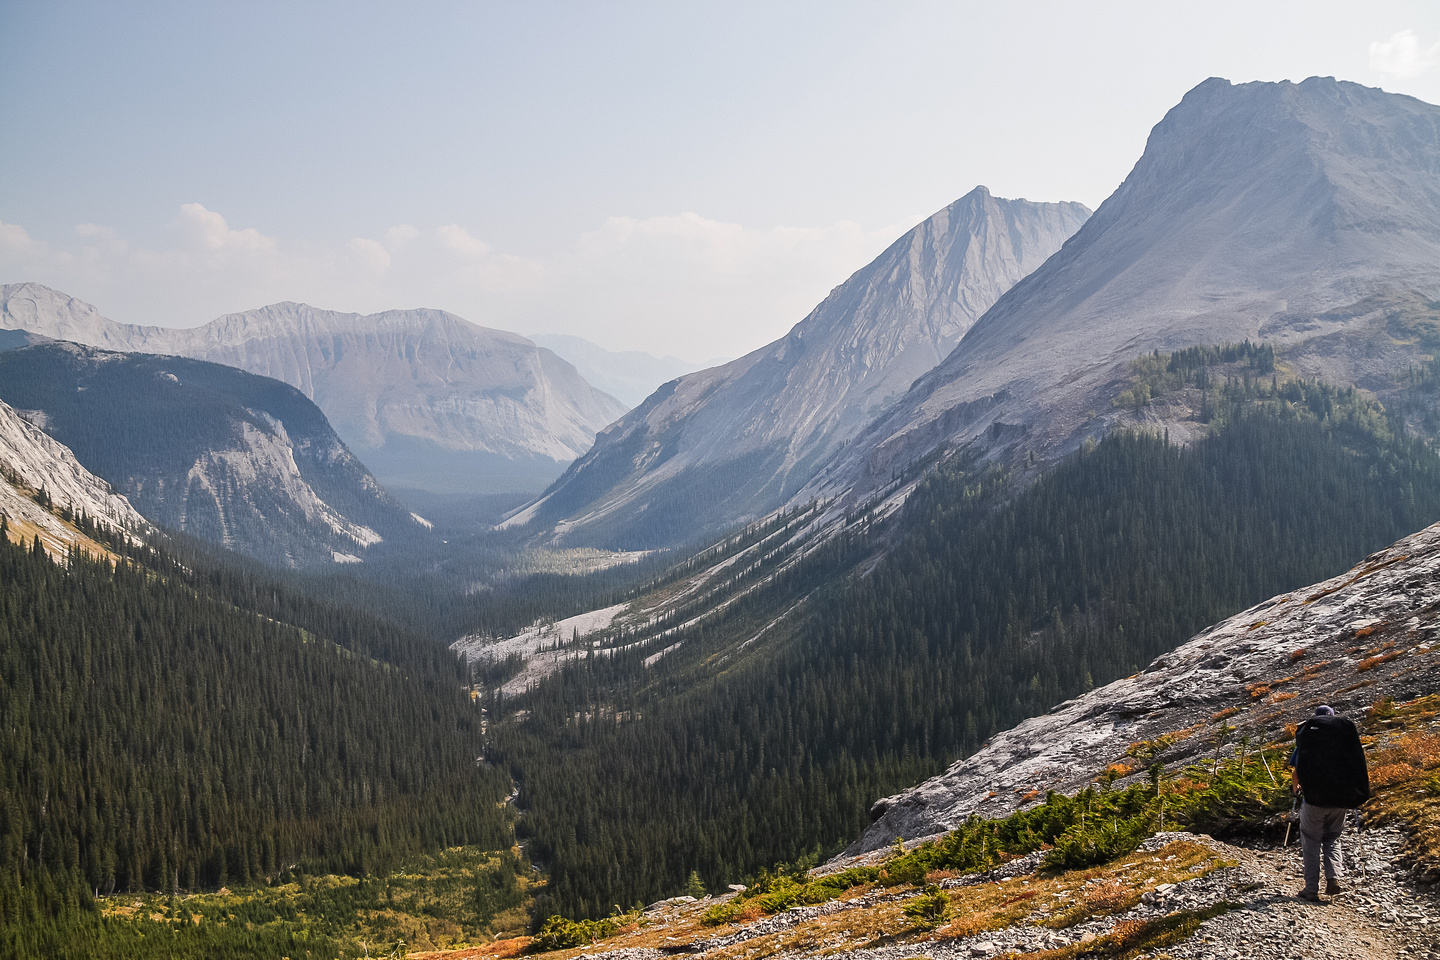 Incredible views from the top of the headwall down Three Isle Creek towards the Kananaskis River. Outliers of Lyautey on the right.